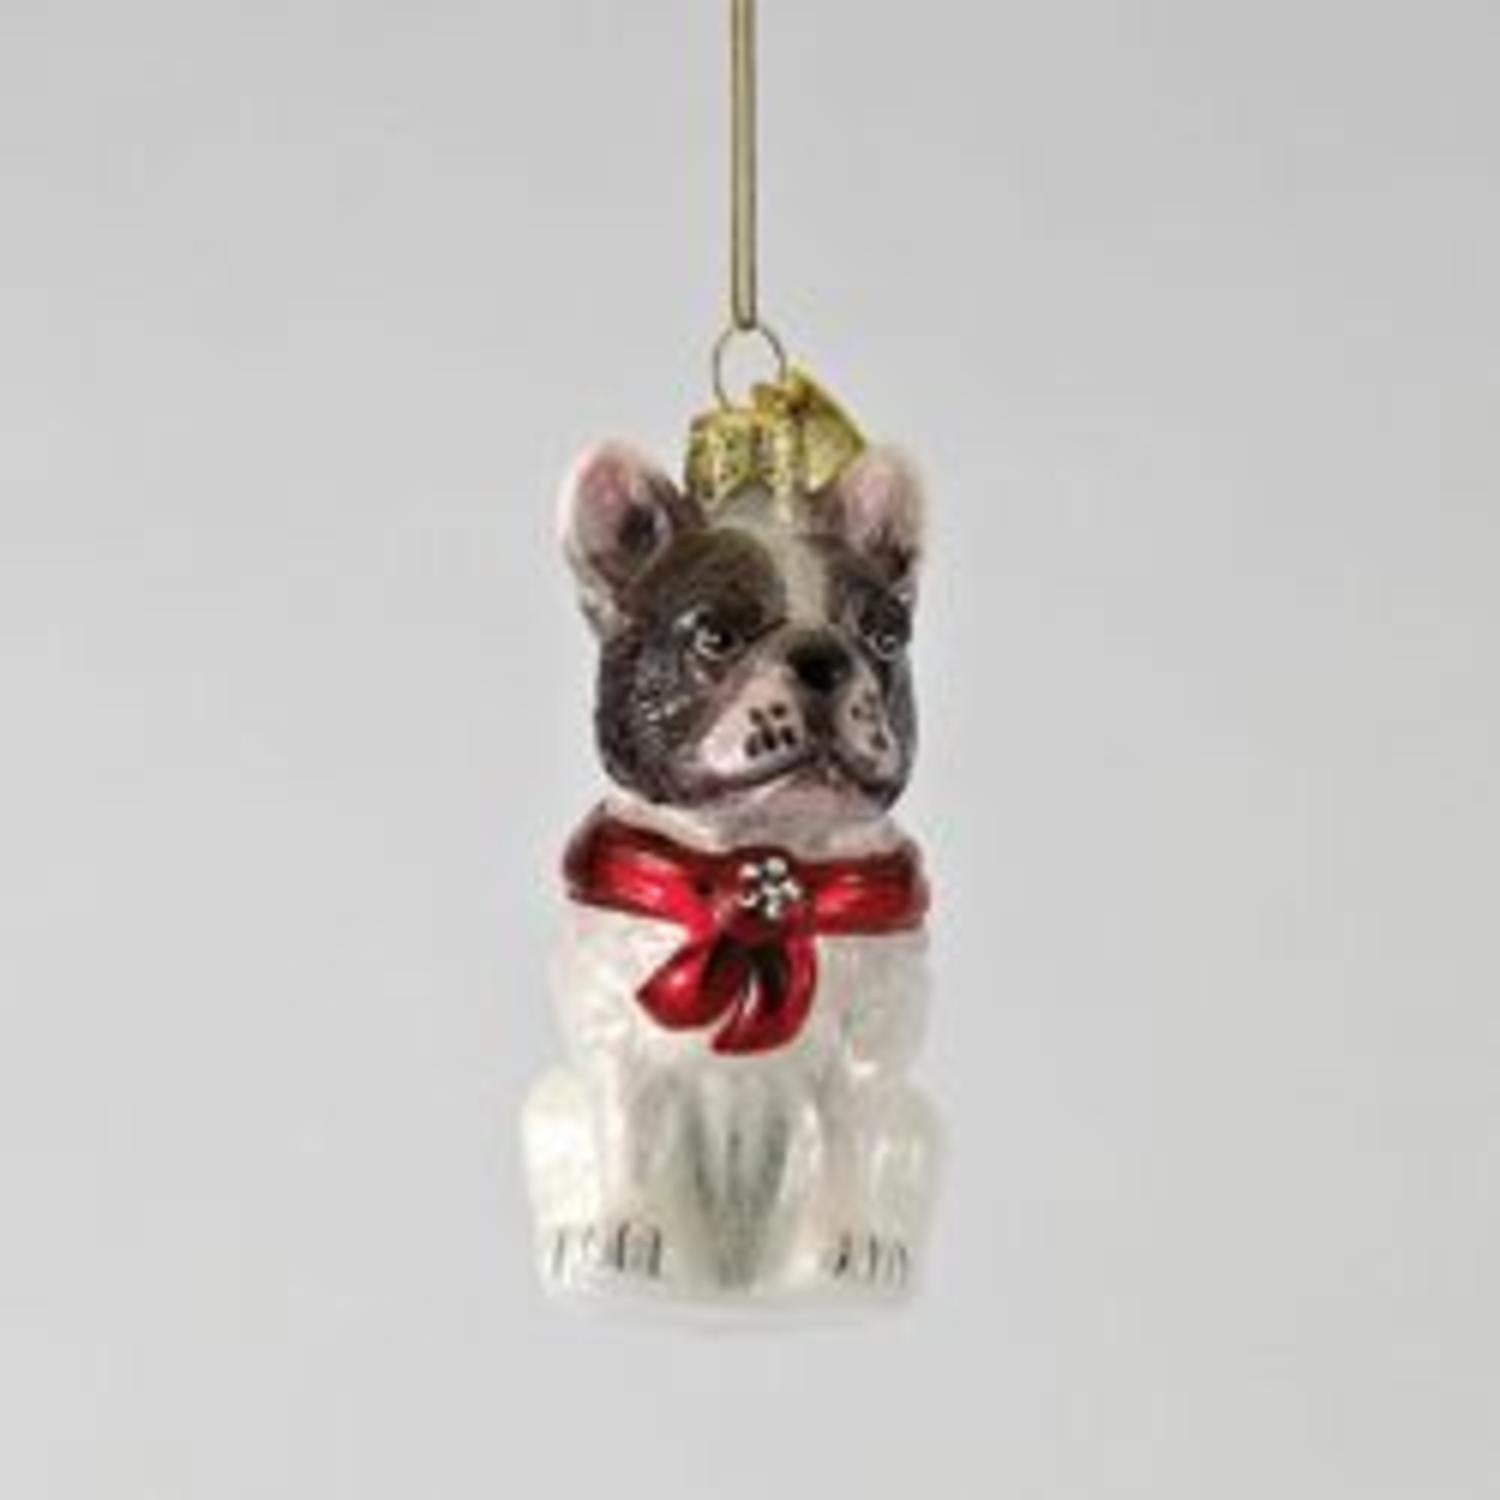 French Bulldog Christmas Ornament.Pack Of 6 Noble Gems Glass French Bulldog With Red Holiday Bow Christmas Ornaments 3 5